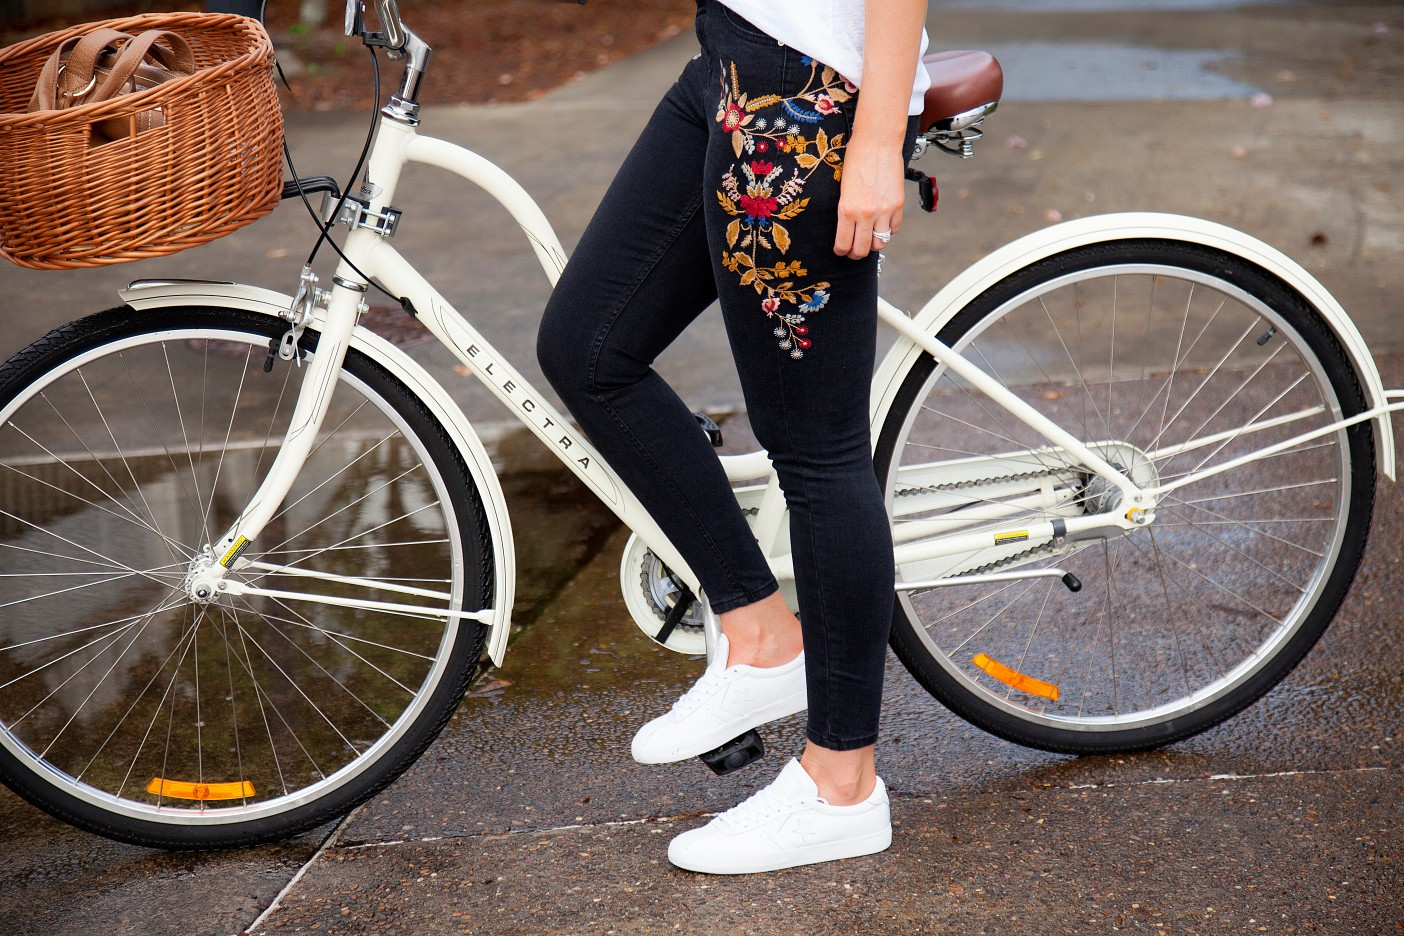 casual outfit ideas embroidered jeans and white tee marigold trend fashion blogger cute cream bike with basket electra cruiser bike lauren slade style elixir blog 6